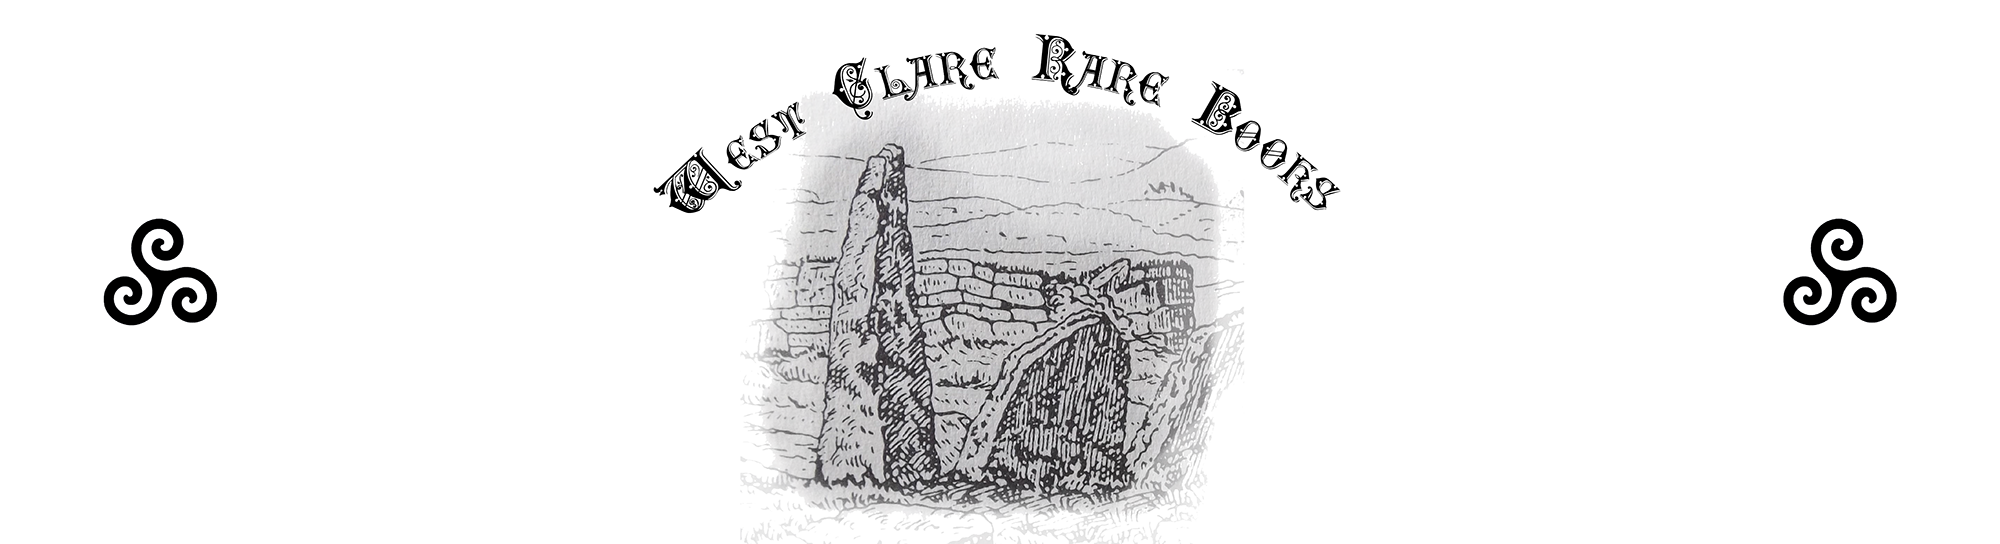 West Clare Rare Books Standing Stones Image